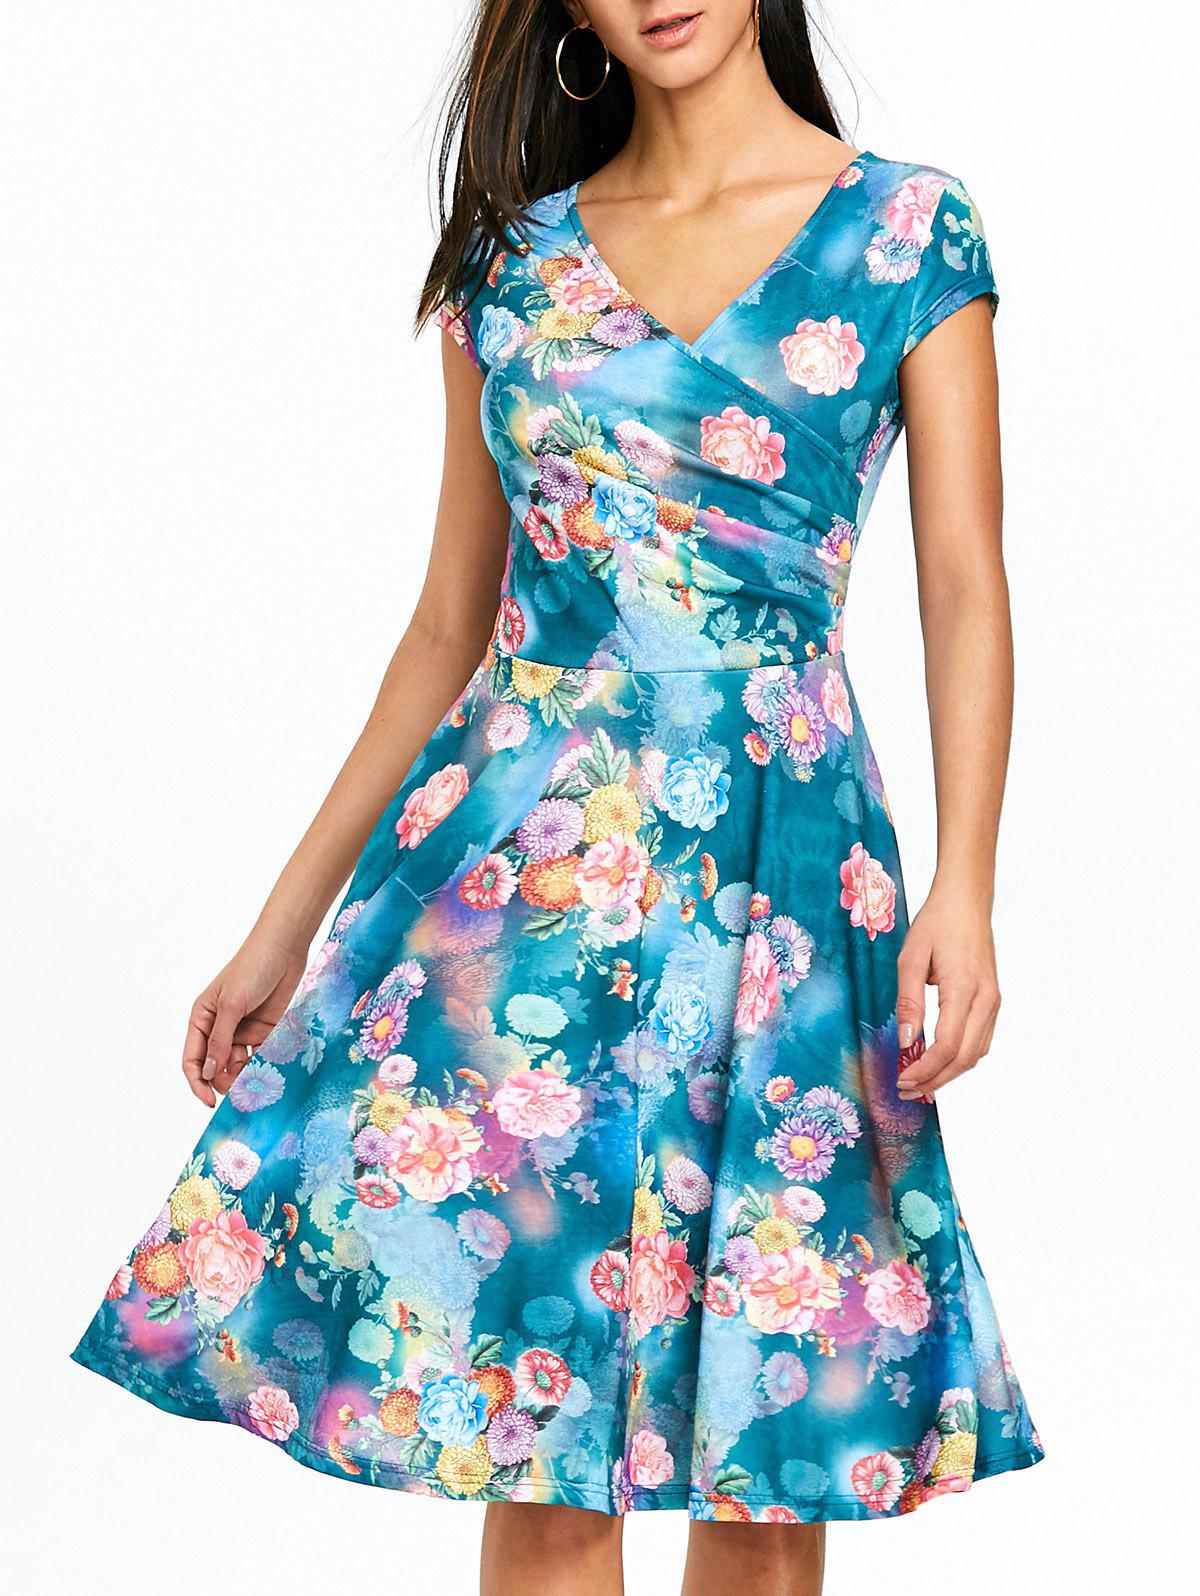 b43ae8ed42 2019 Surplice Floral Printed Skater Dress